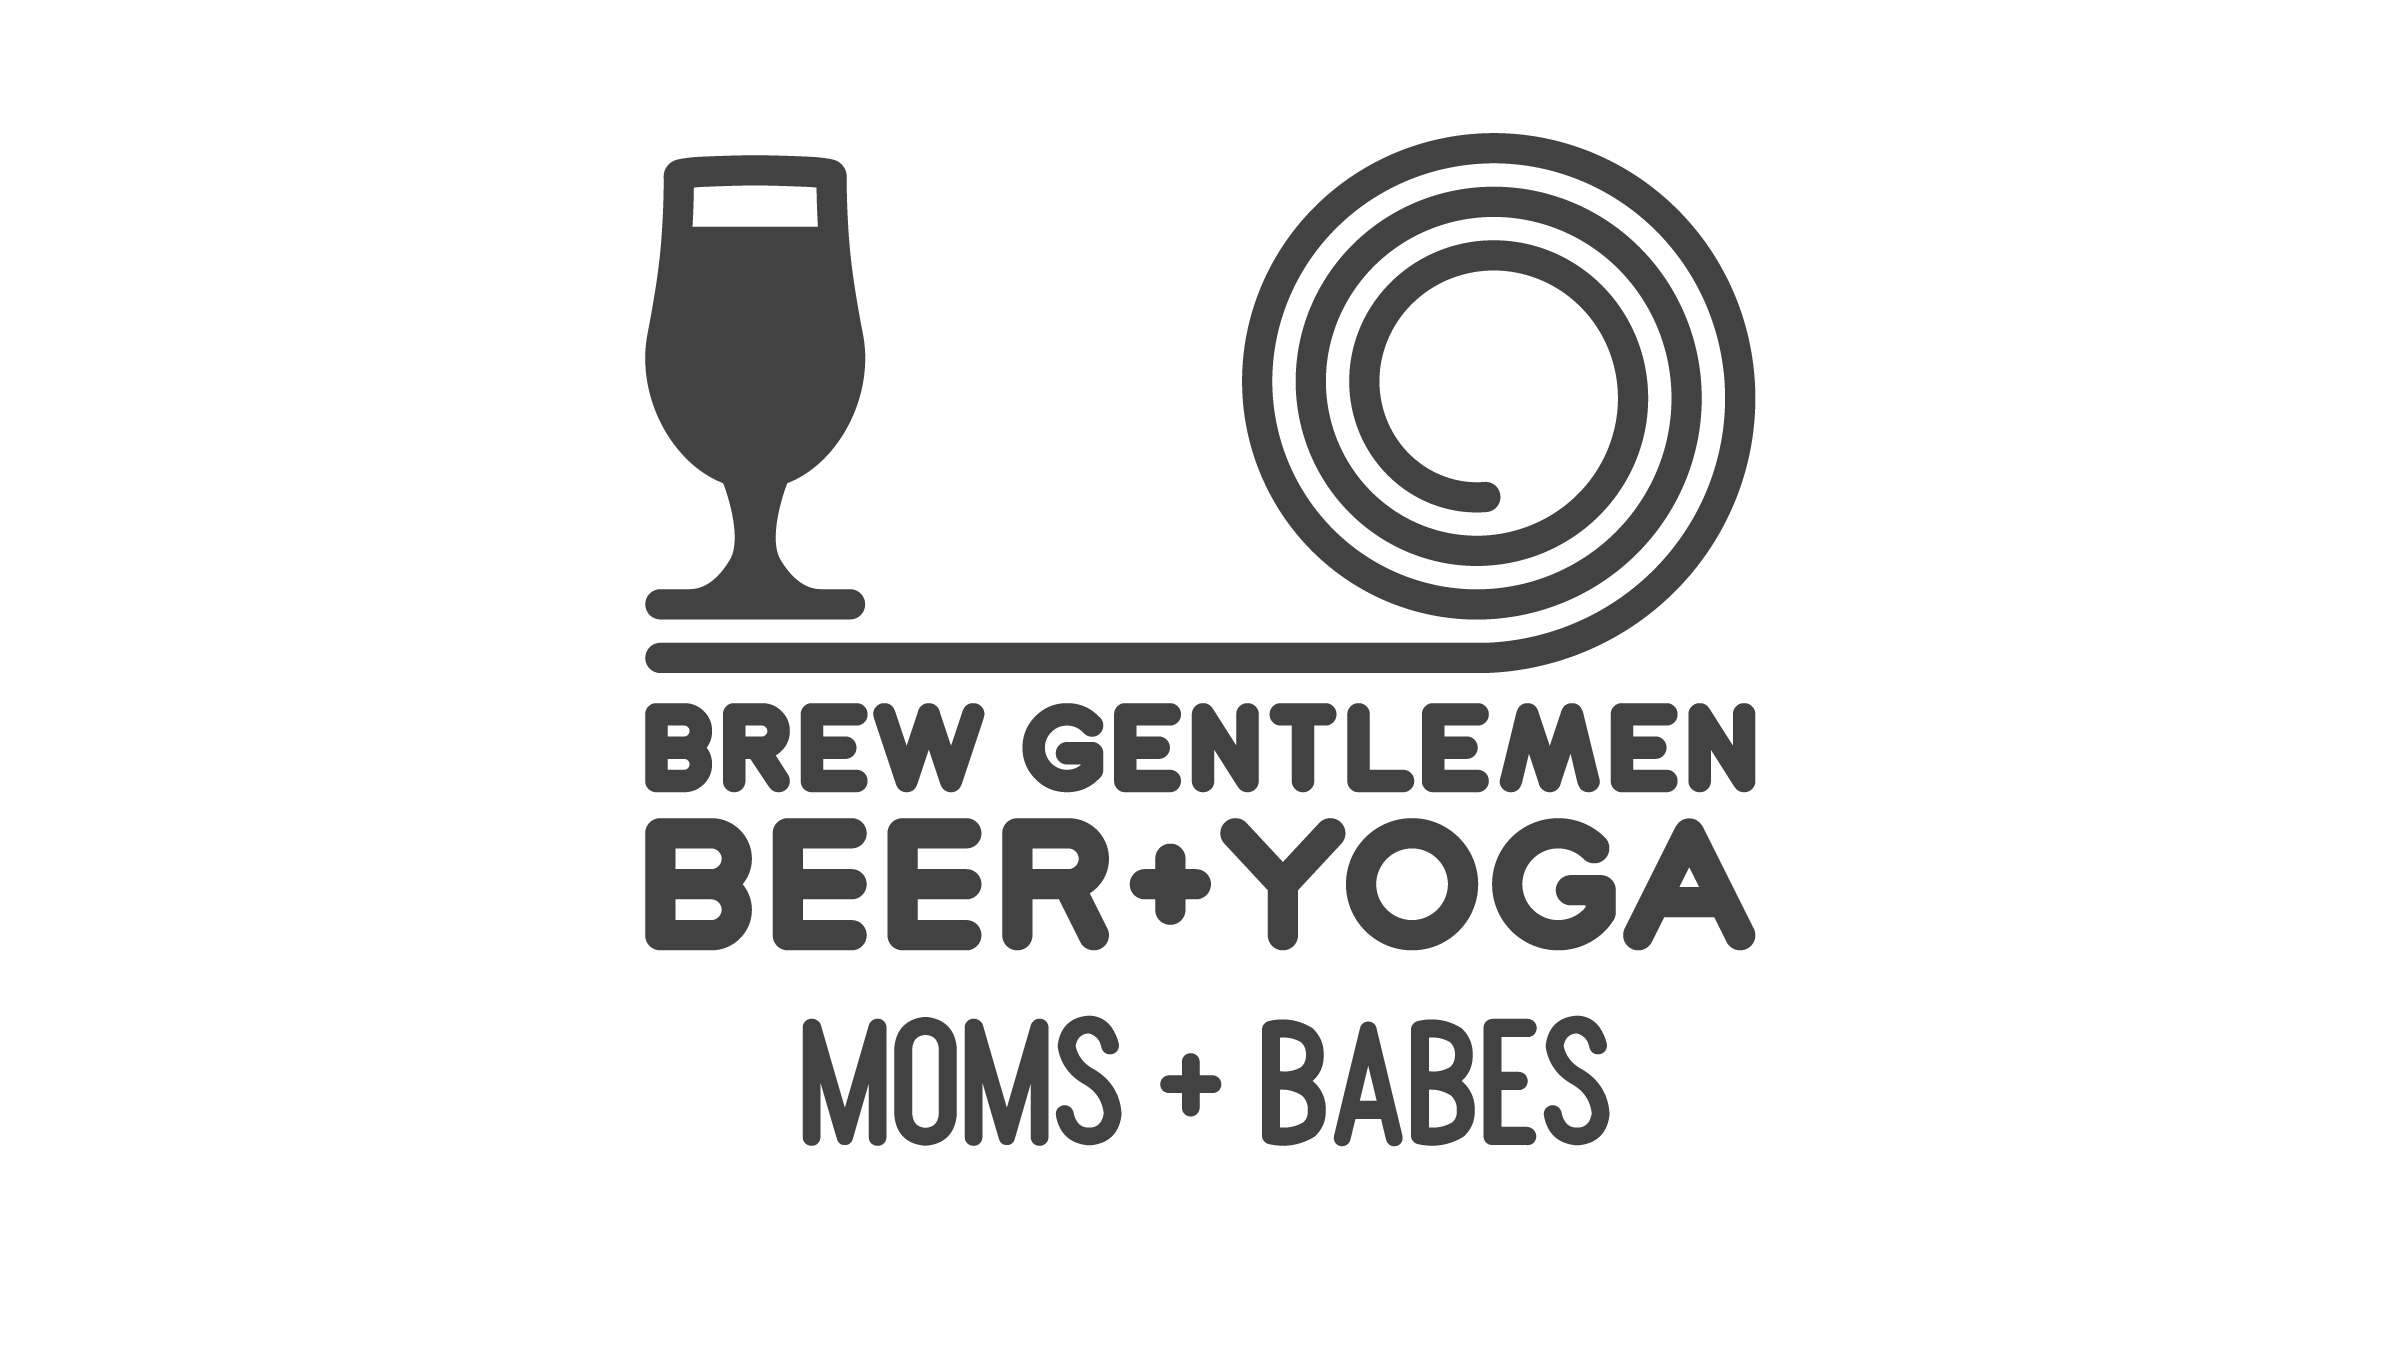 Beer + Yoga: Moms + Babes